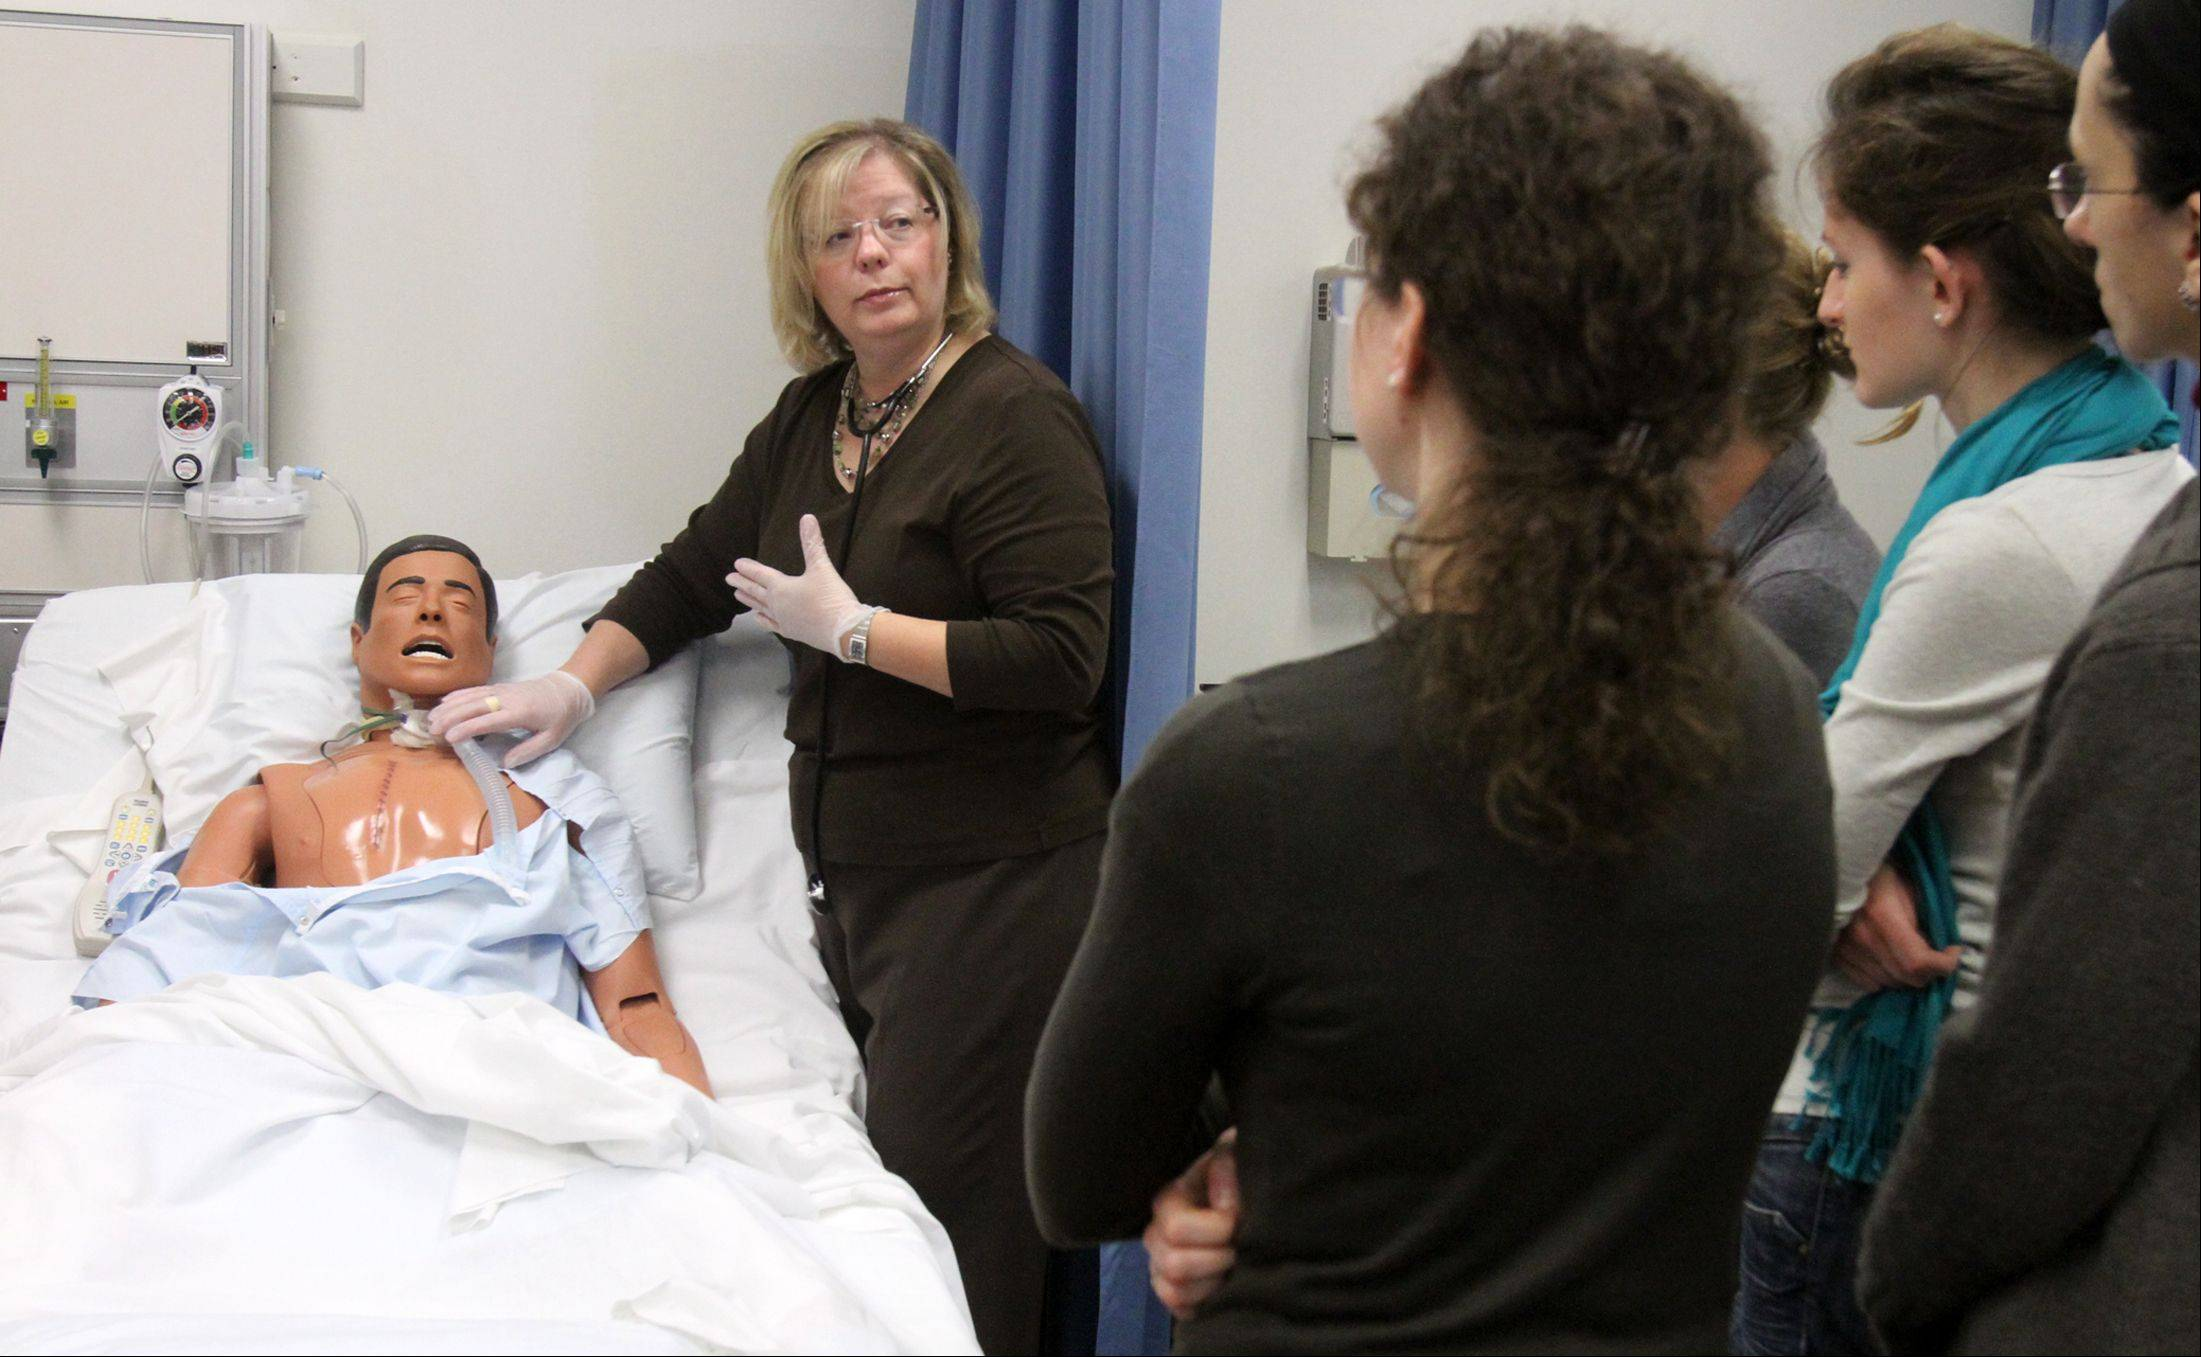 Dawn Kuerschner, associate professor, instructs nursing program students using a human patient simulator at Oakton Community College in Des Plaines. The simulator was purchased by the college's foundation.